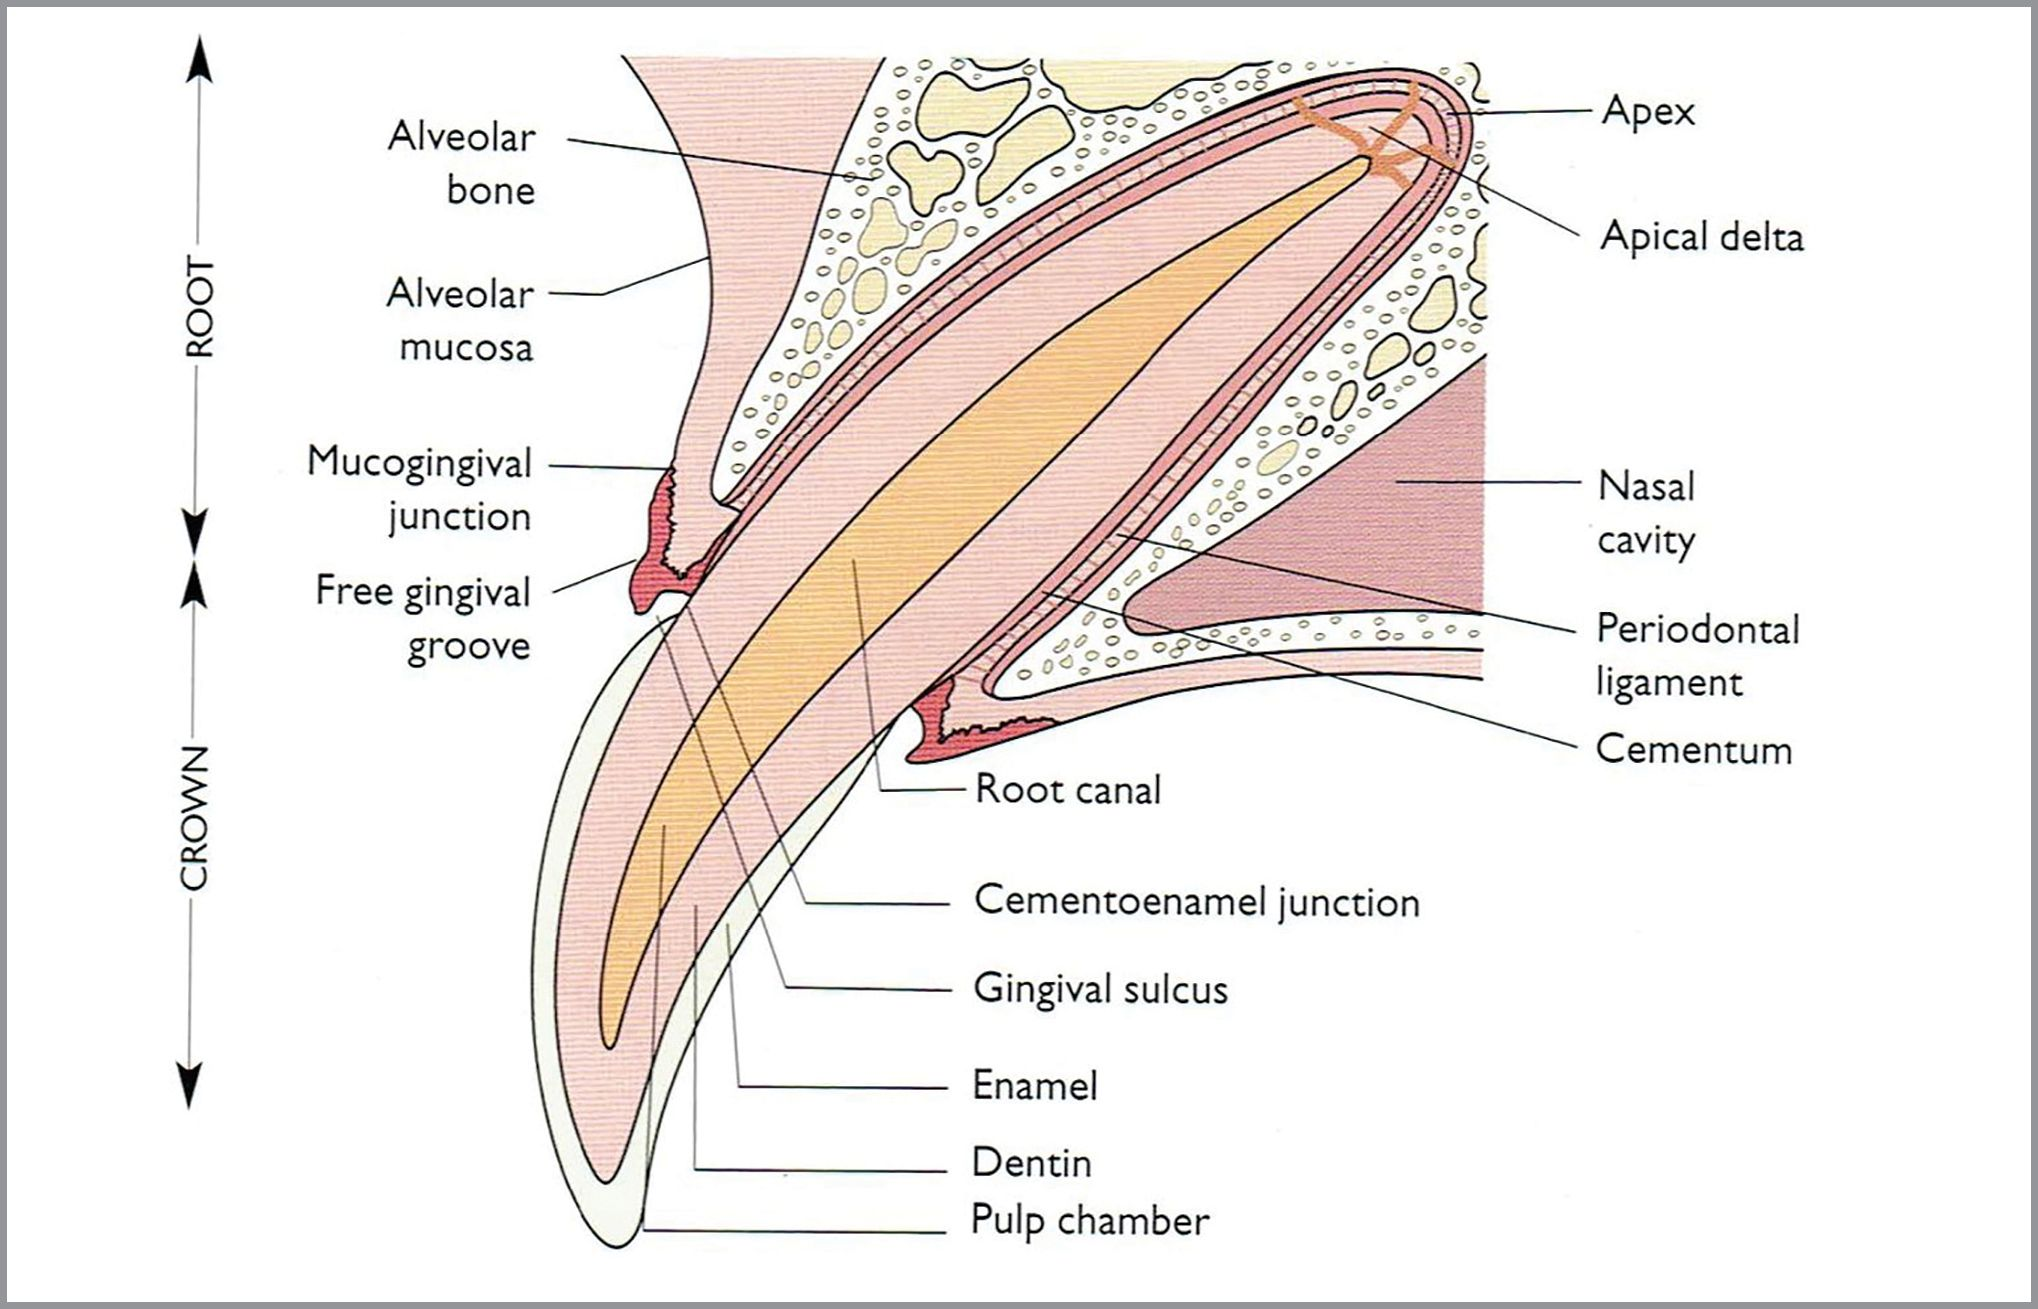 Anatomy of human tooth